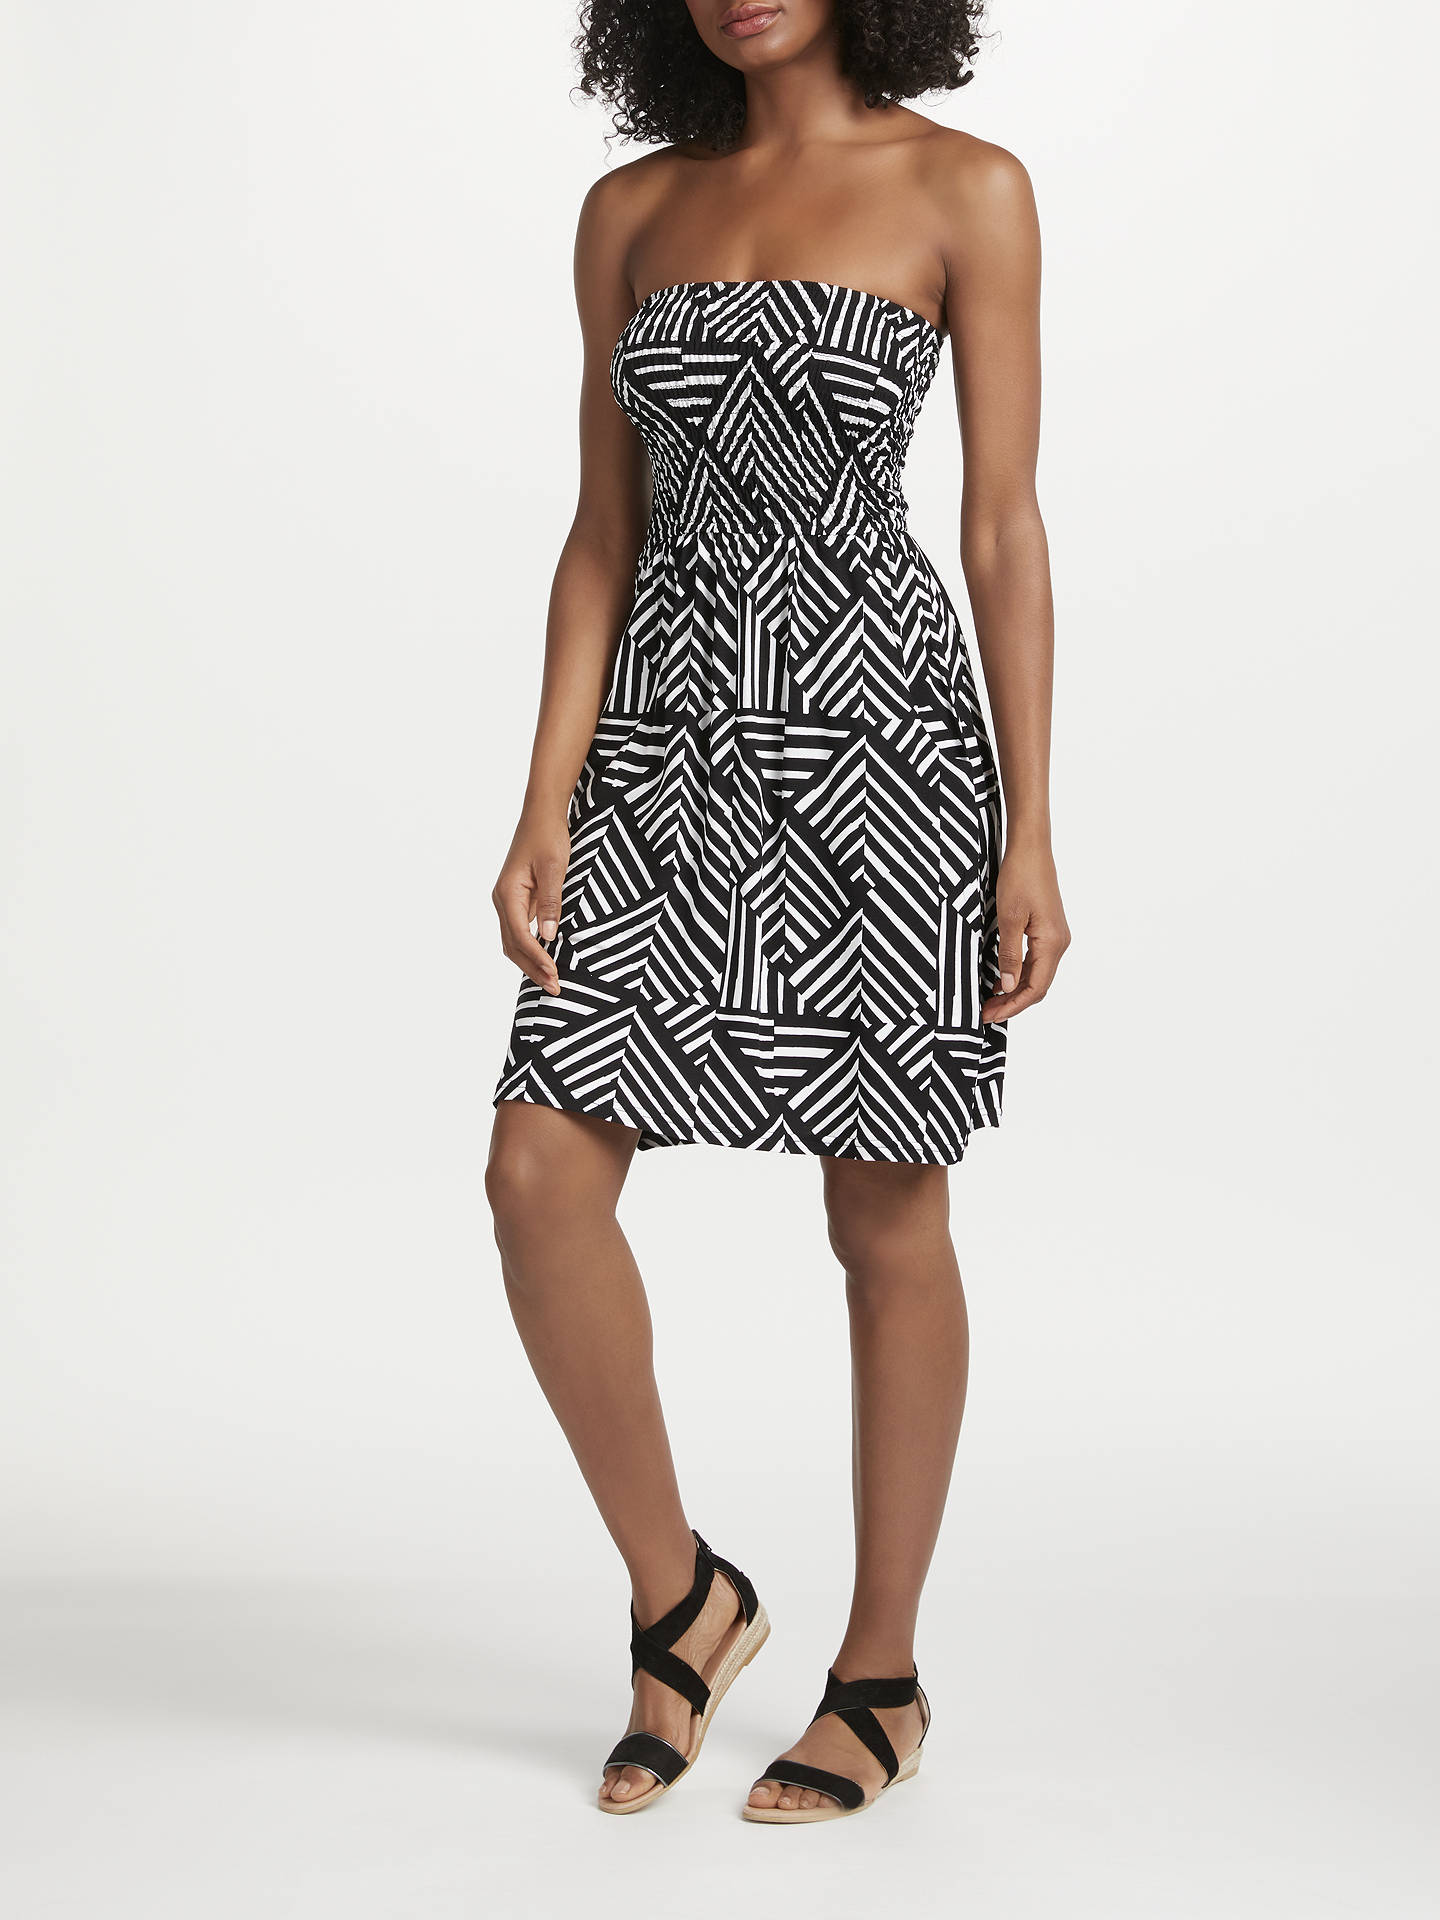 BuyJohn Lewis & Partners Diamond Geo Print Bandeau Jersey Dress, Black/Multi, M Online at johnlewis.com